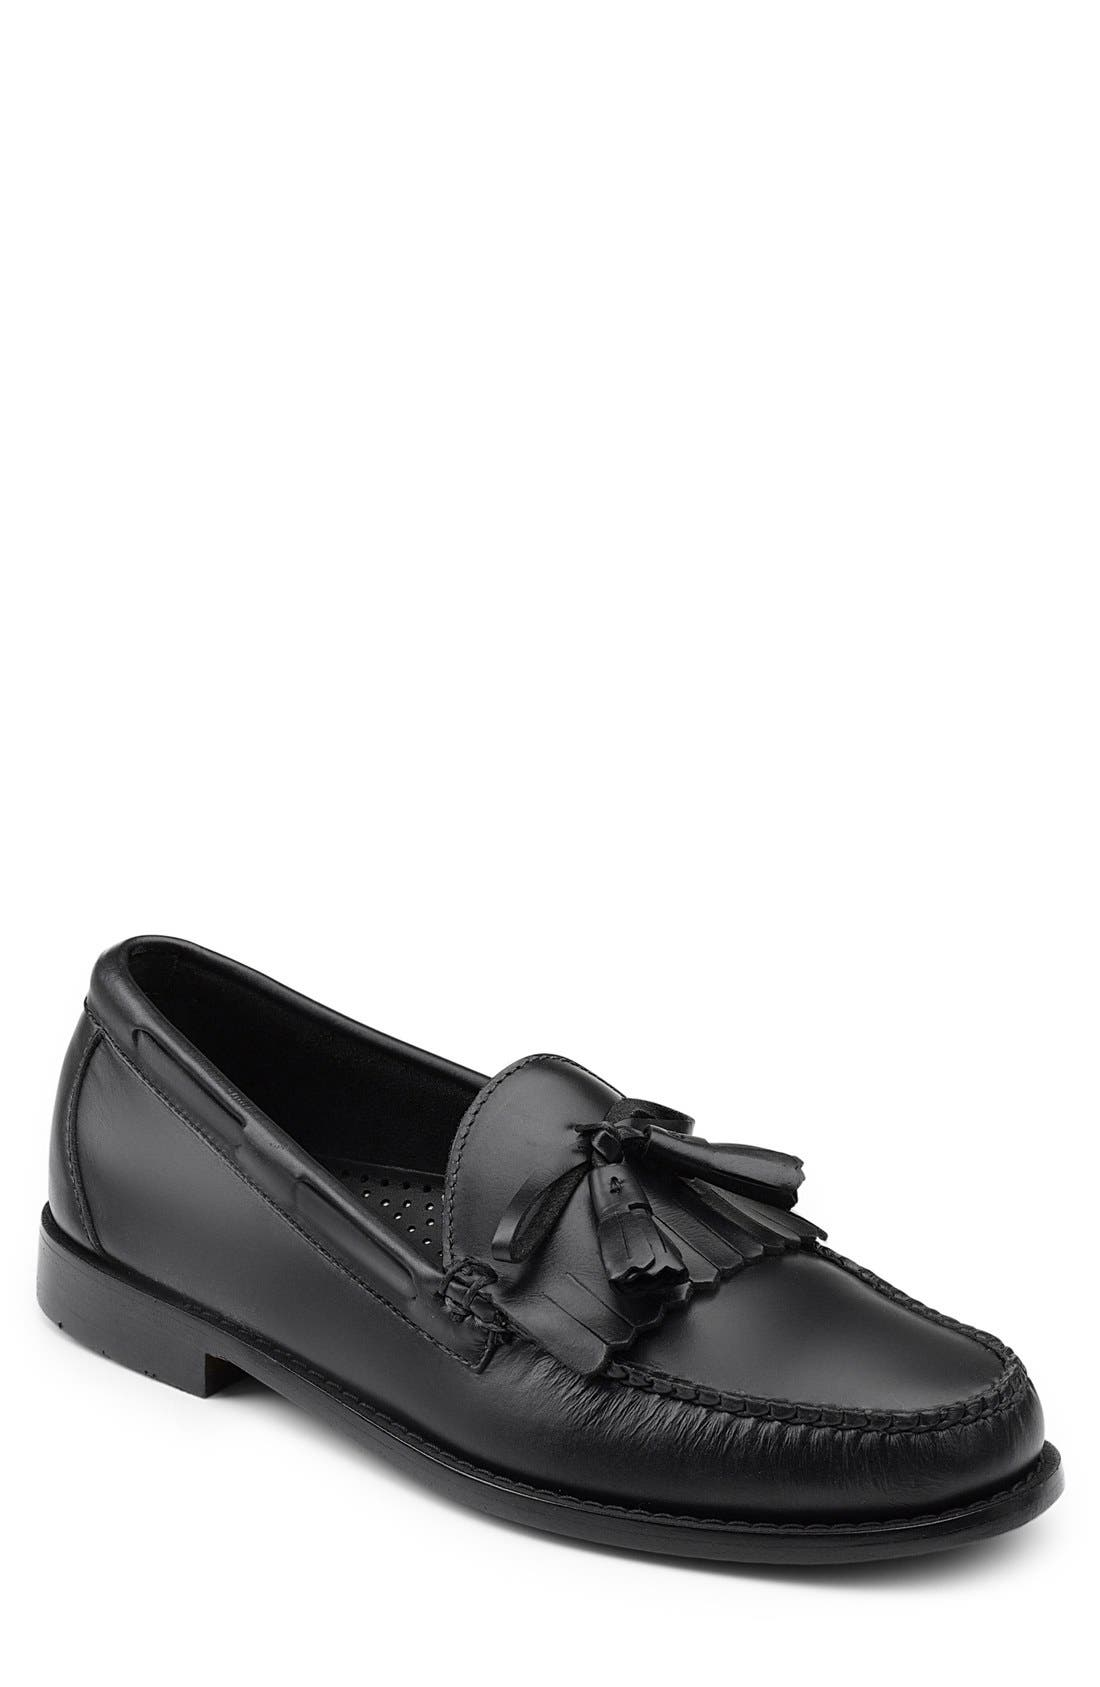 'Lawrence' Tassel Loafer,                         Main,                         color,